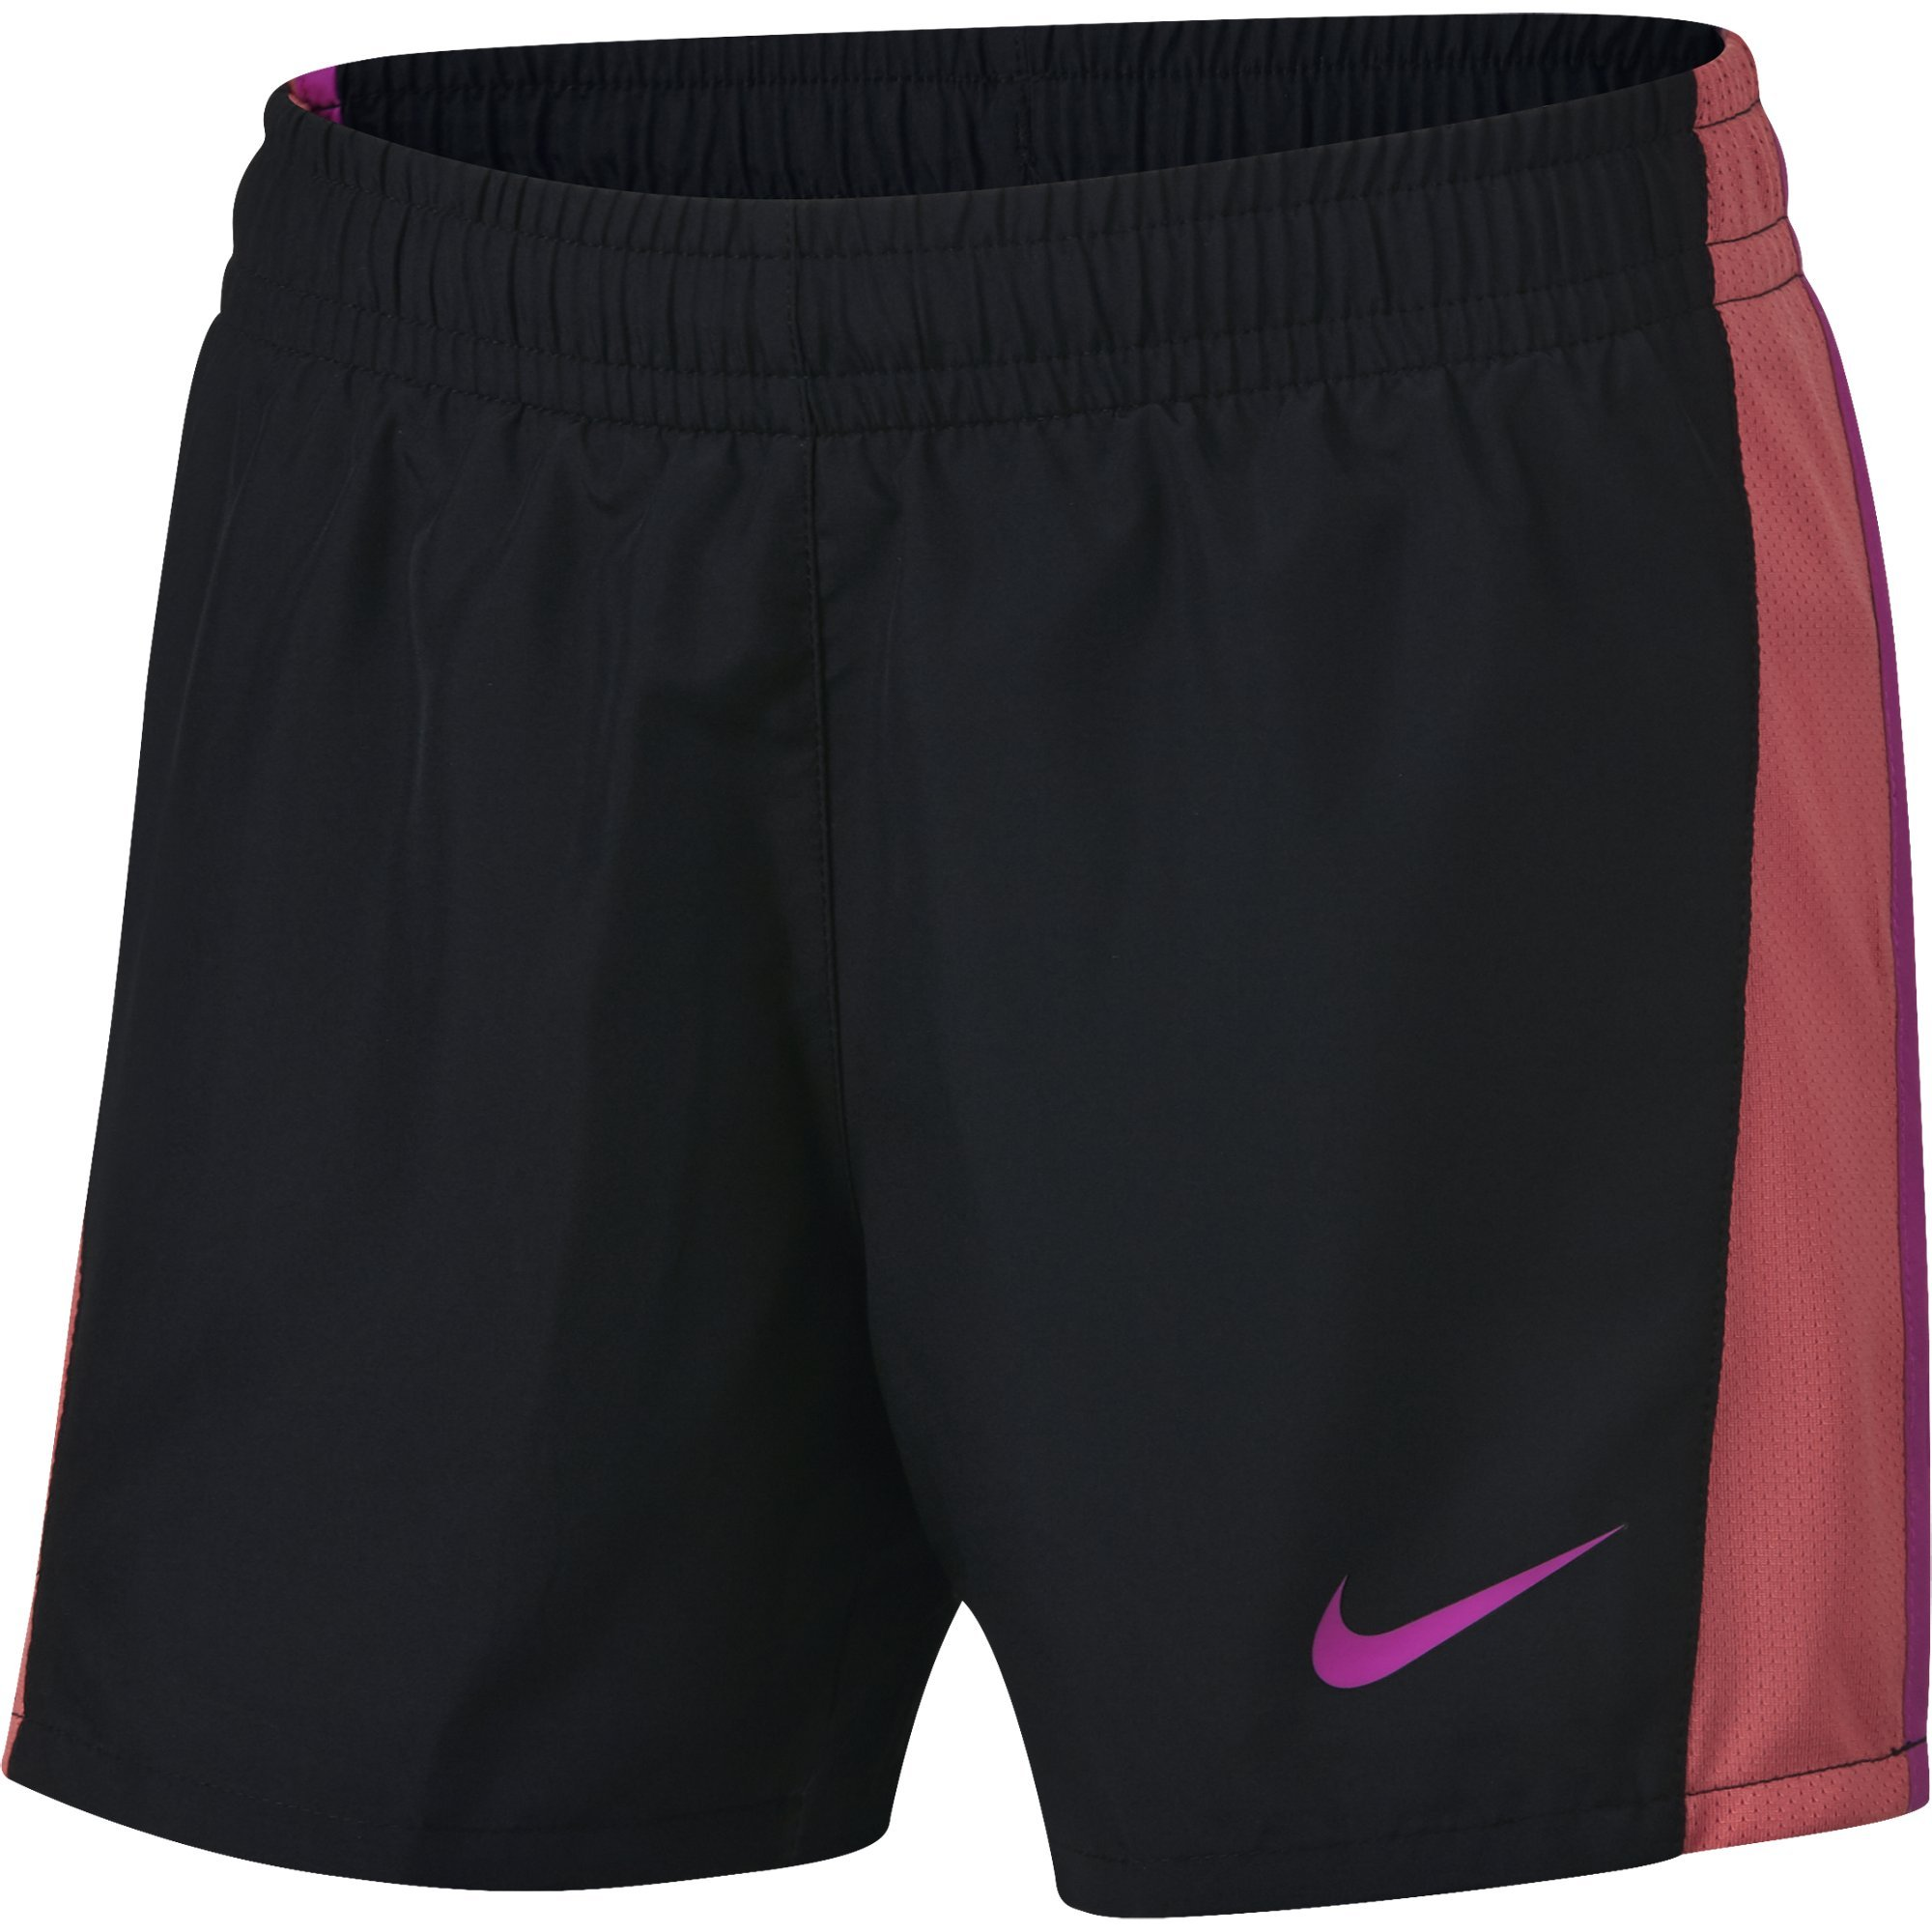 NIKE Girls' Dry 10K Running Shorts, Black/Sea Coral/Hyper Magenta, Medium by Nike